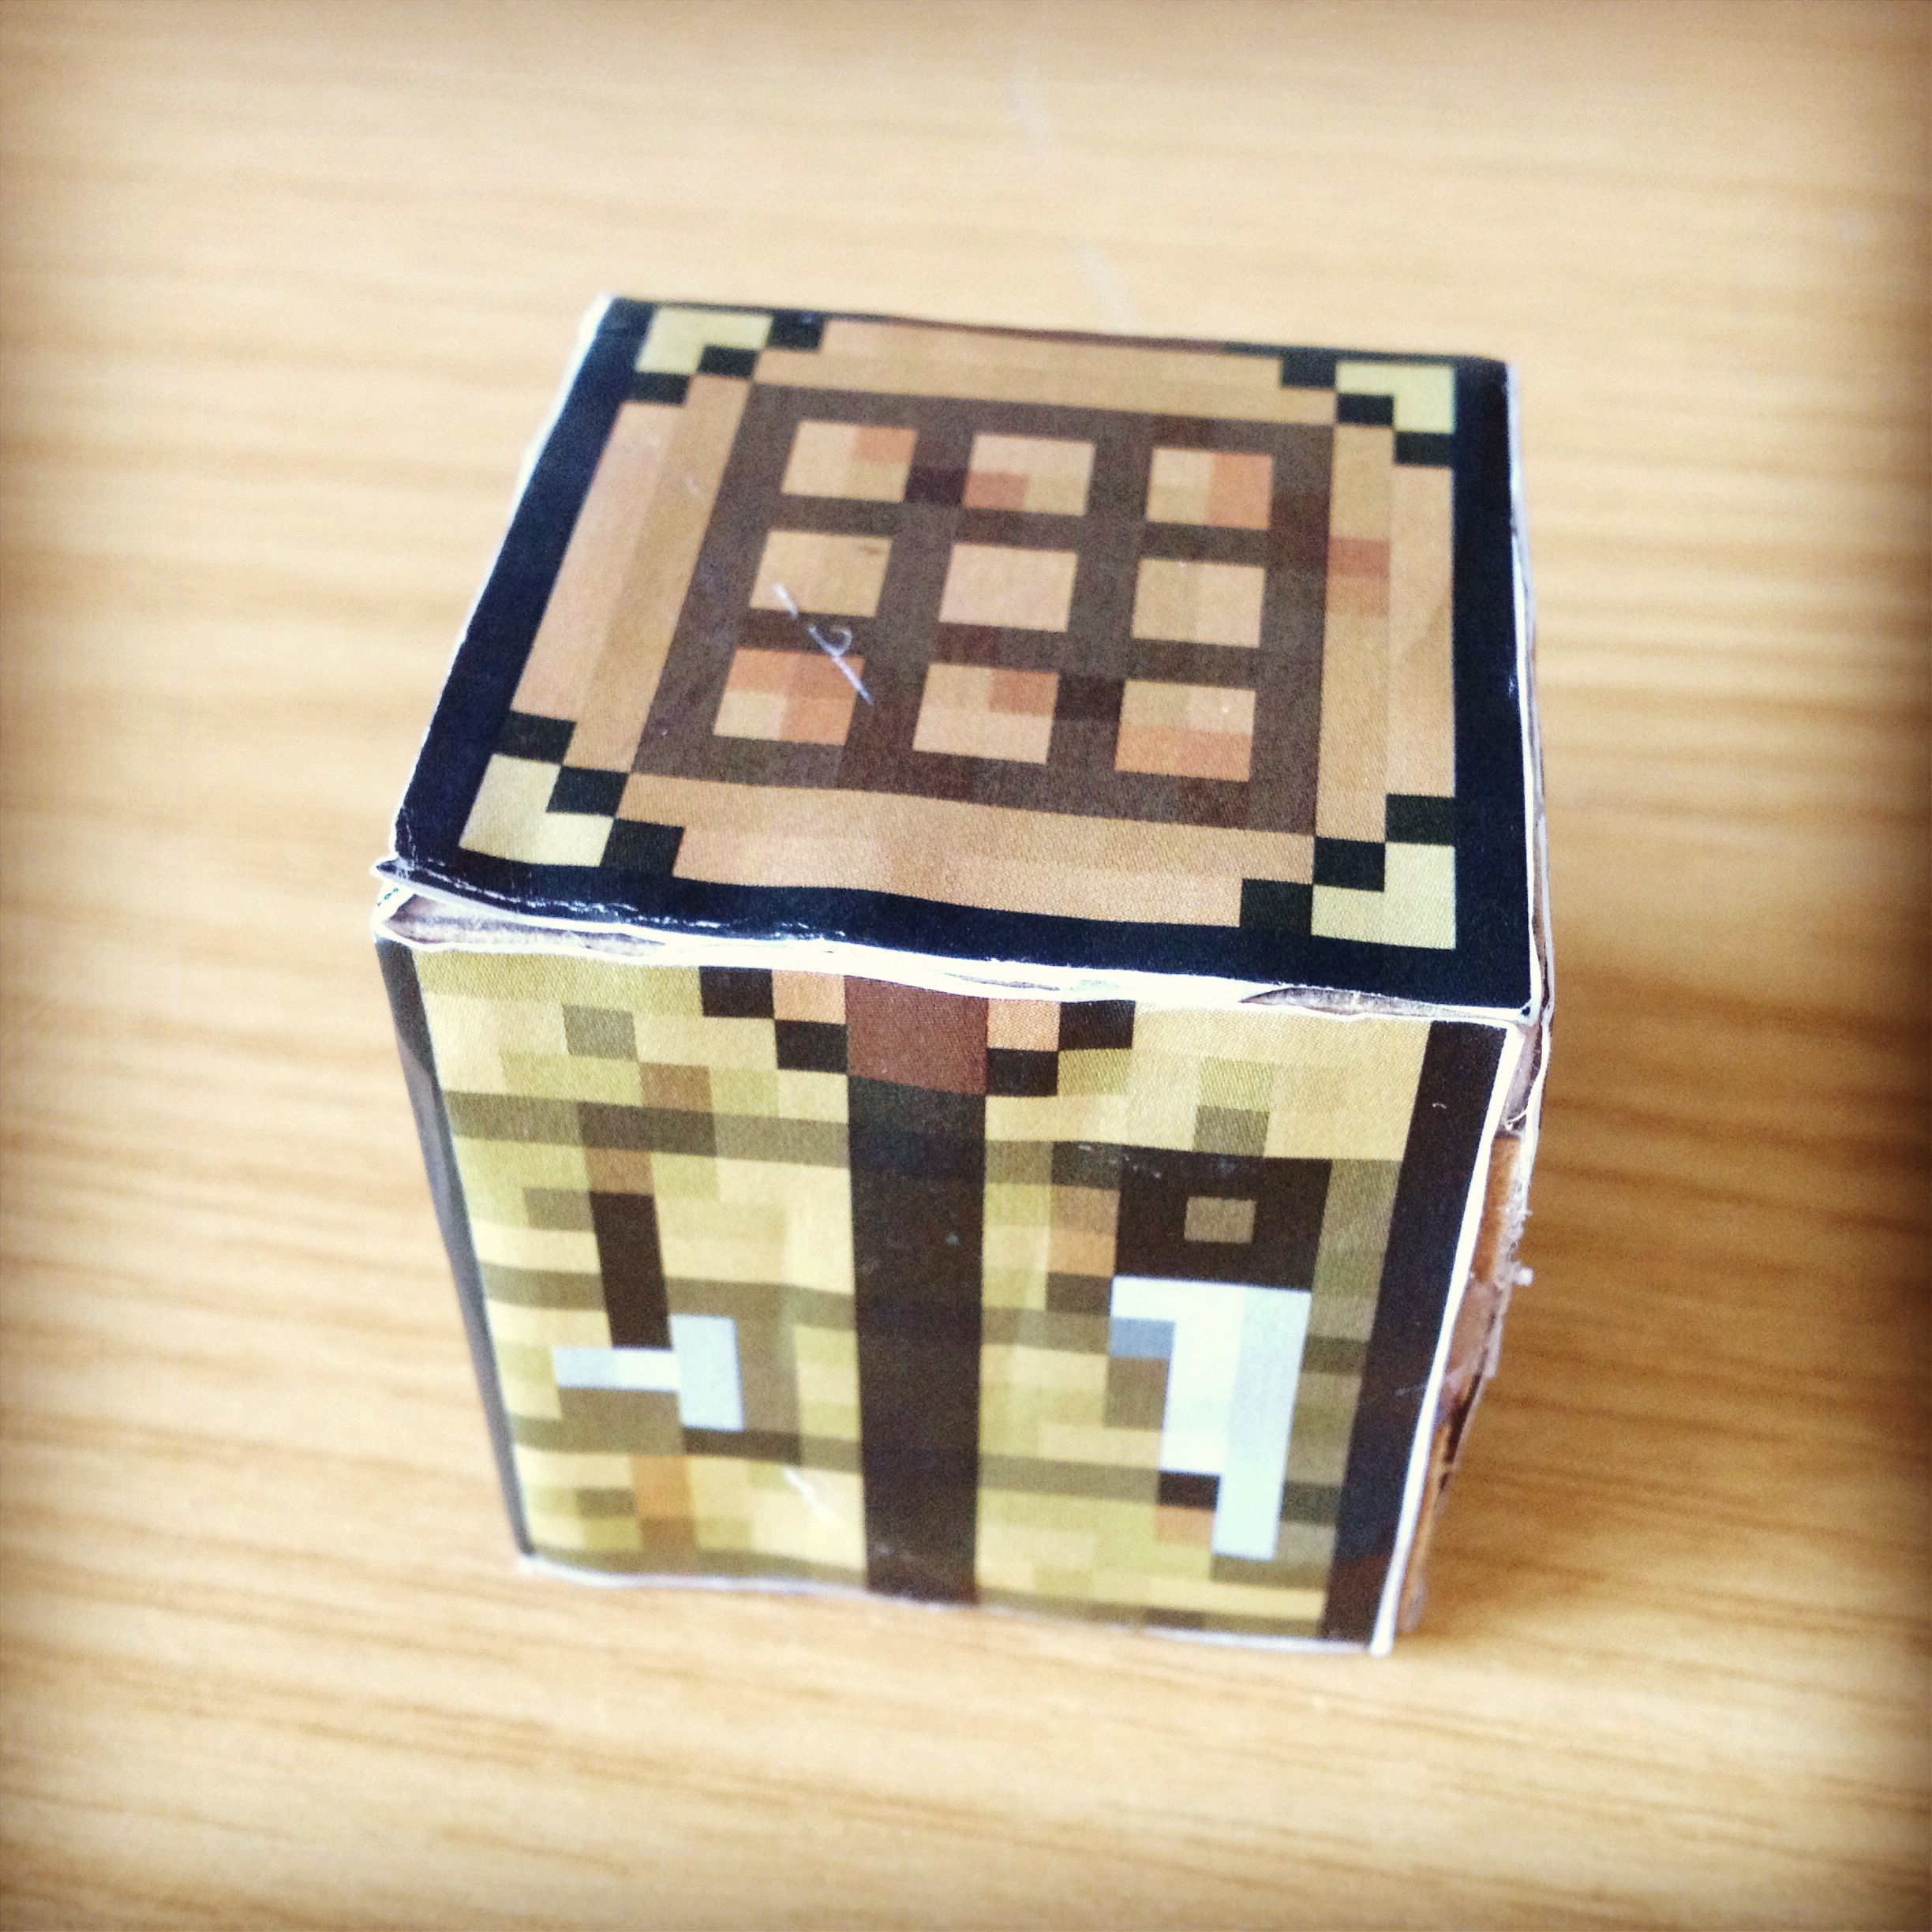 I Made A Minecraft Crafting Table In Dt Craft Table Decorative Boxes Crafts